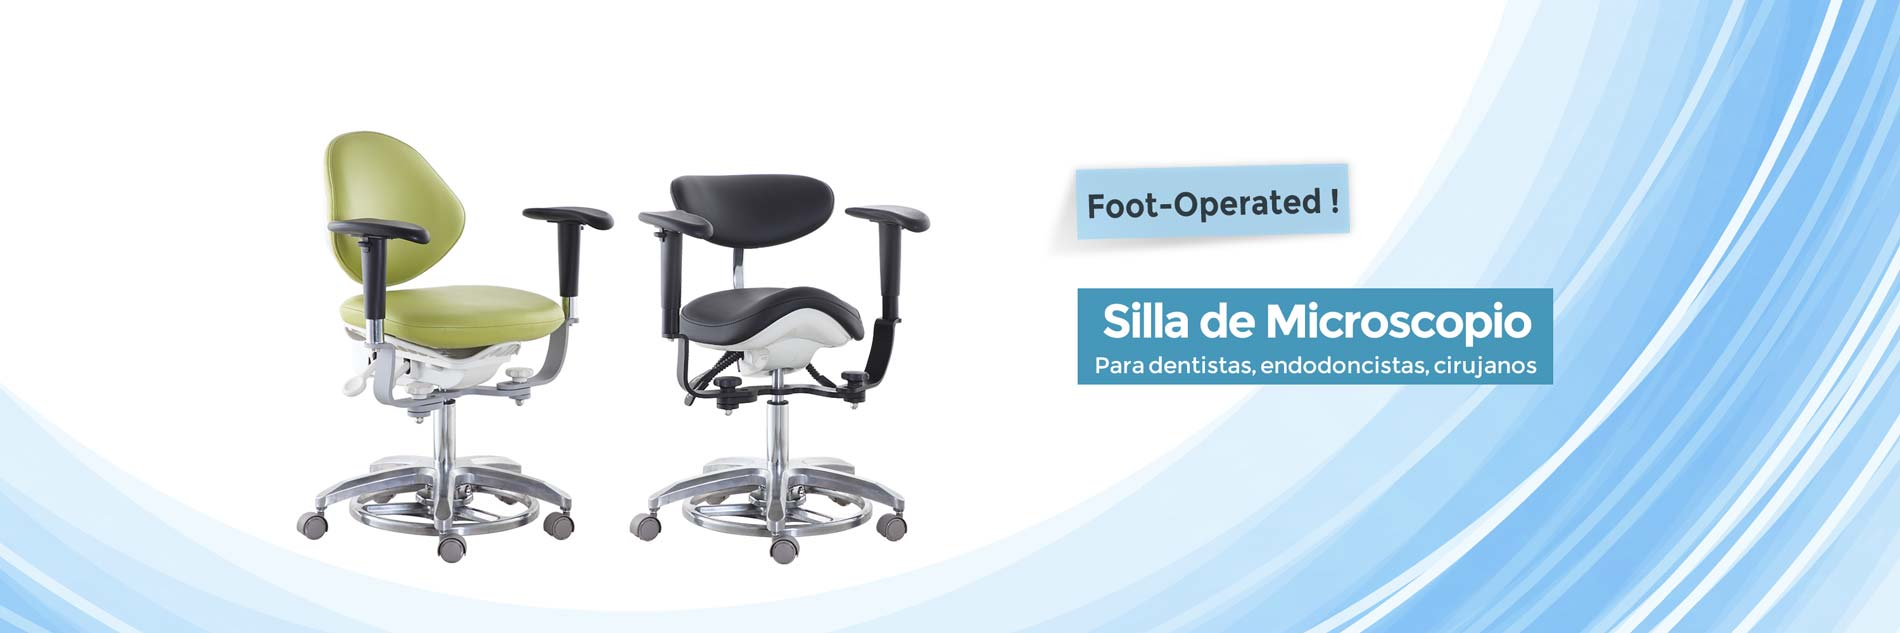 Silla de Microscopio-TRONWIND MEDICAL CHAIRS